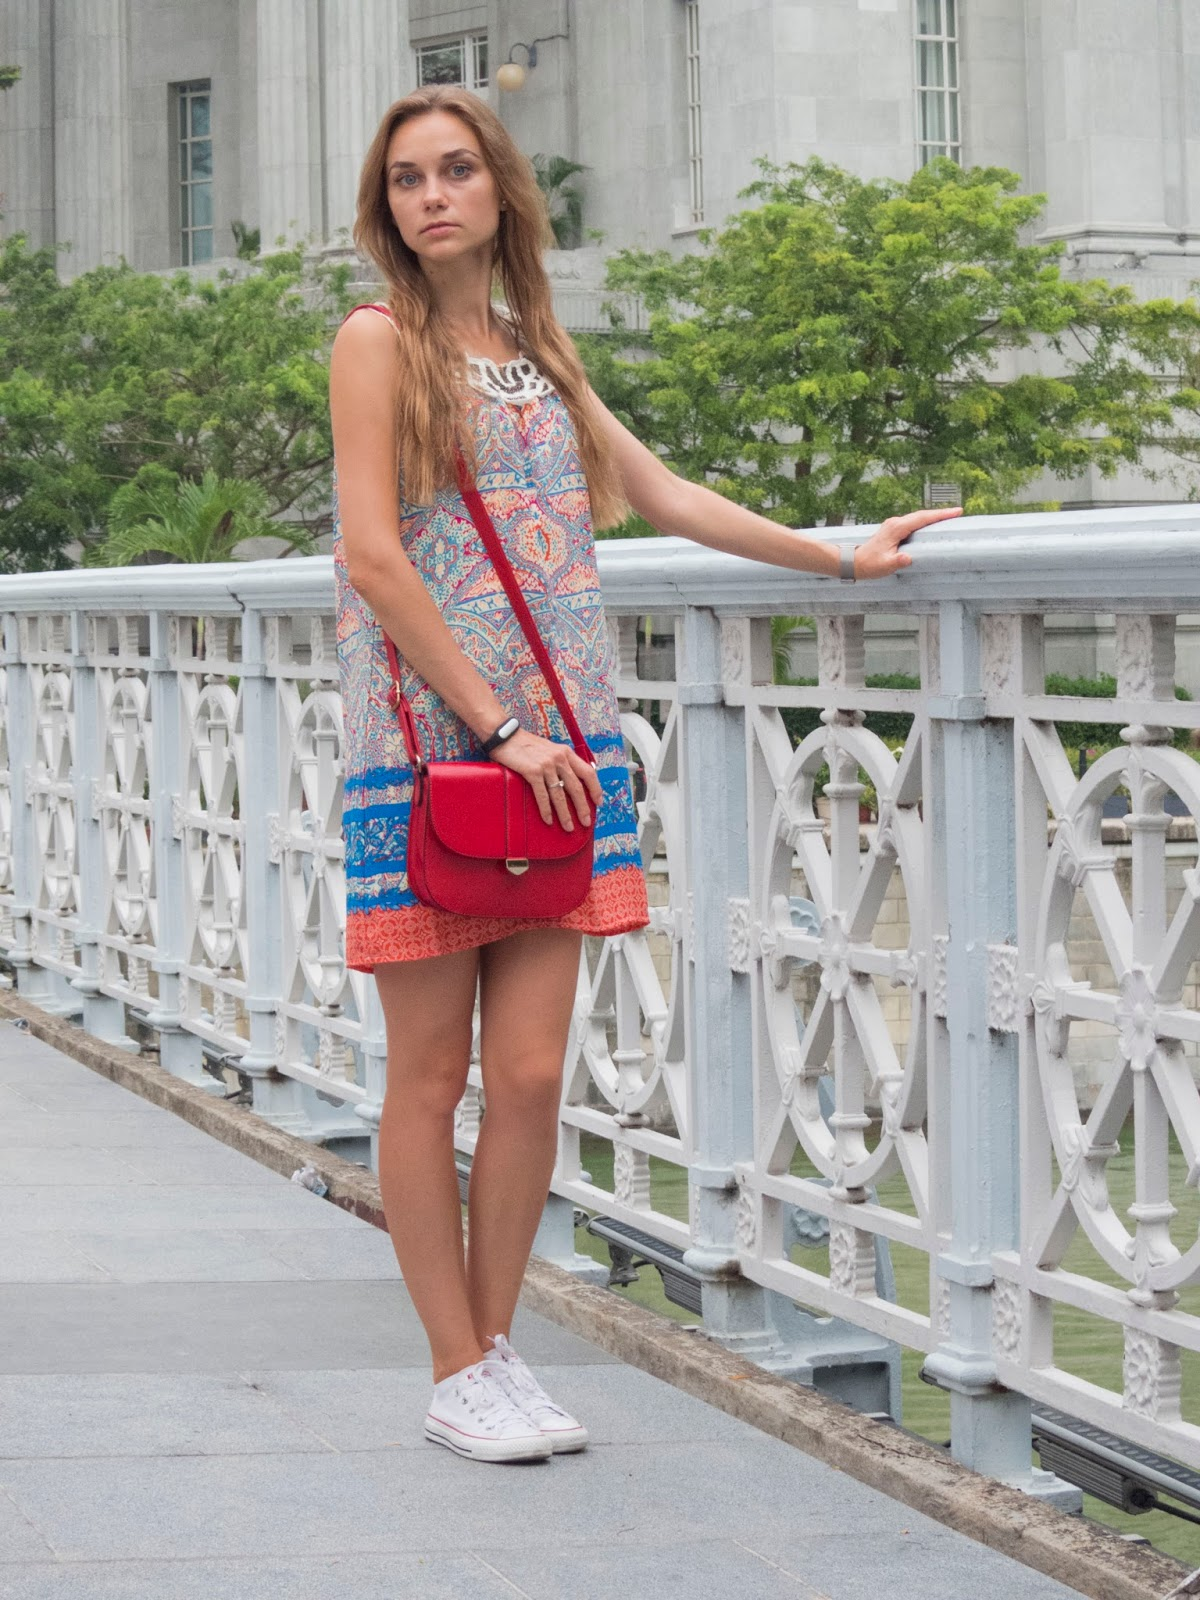 LookOn, look, lookbook, outfit, outfits, ootd, wiw, wiwt, style, fashion, fashion blog, fashion blogger, inspiration, dress with bead-embellished neckline, sneakers, bag, wiw, streetstyle, fashionblogger, styleblogger, summer outfit